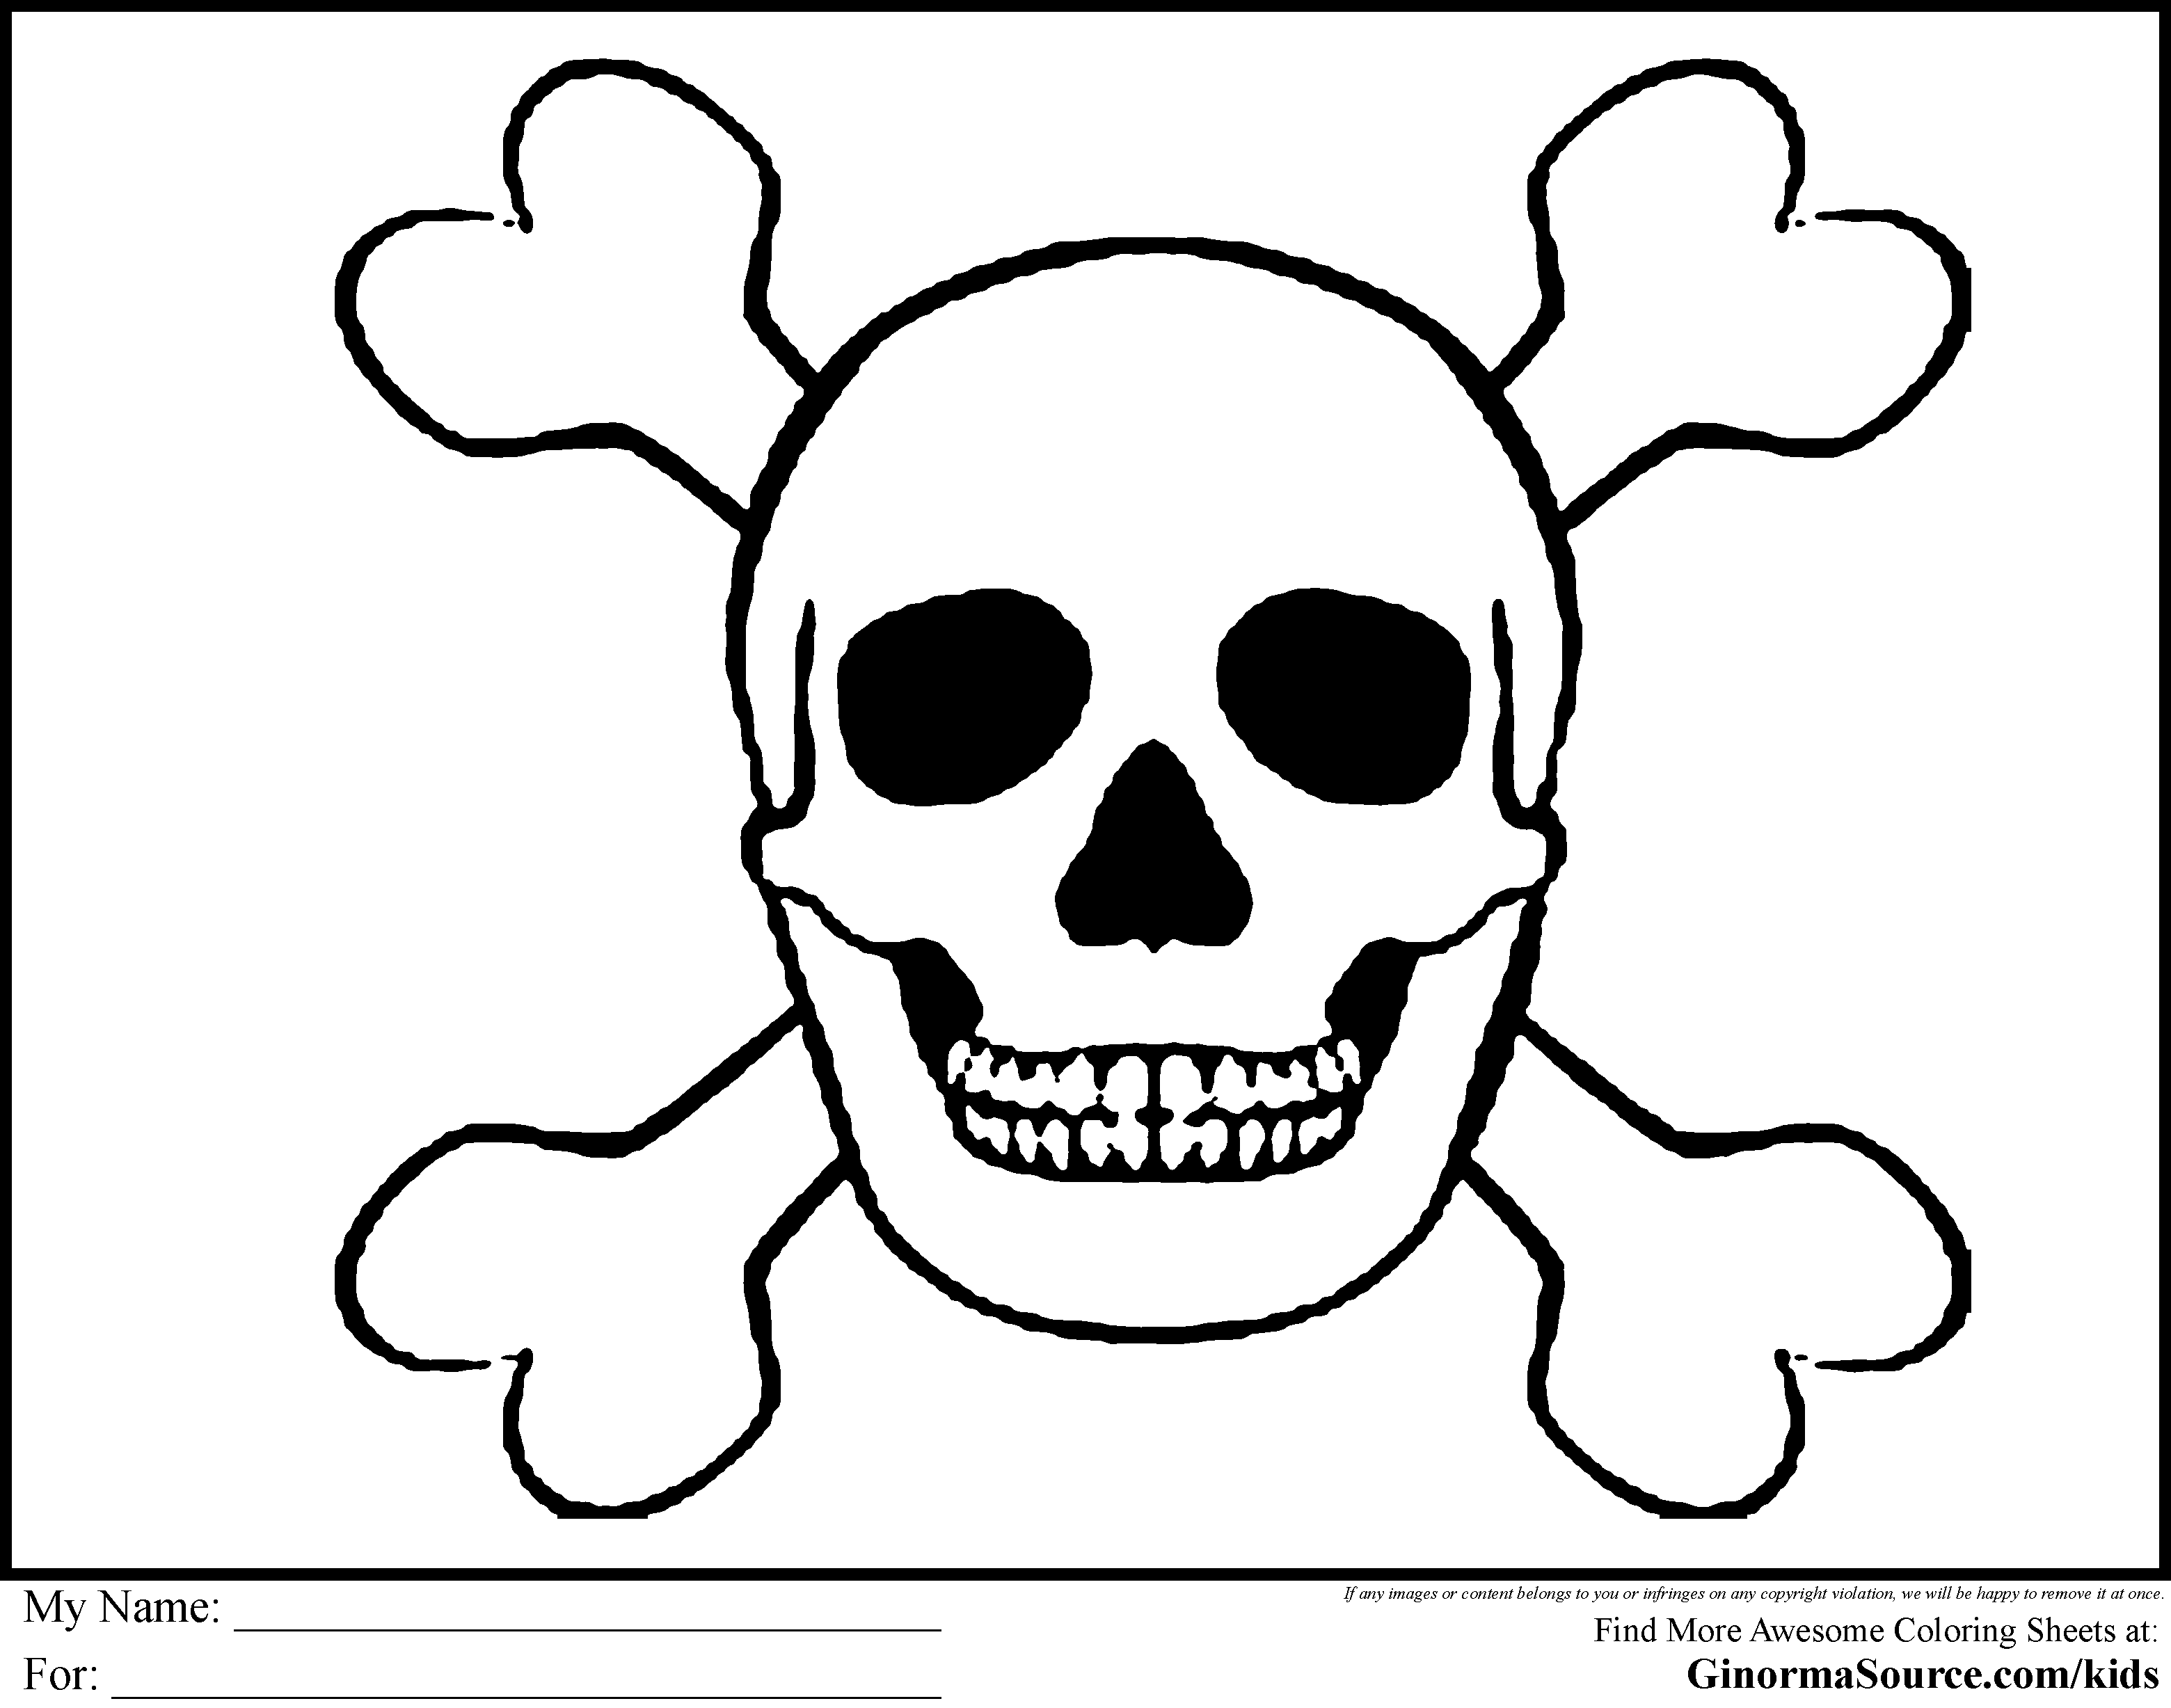 bones of the skull coloring pages | Pirate Coloring Pages Skull and bones | pirates | Pinterest